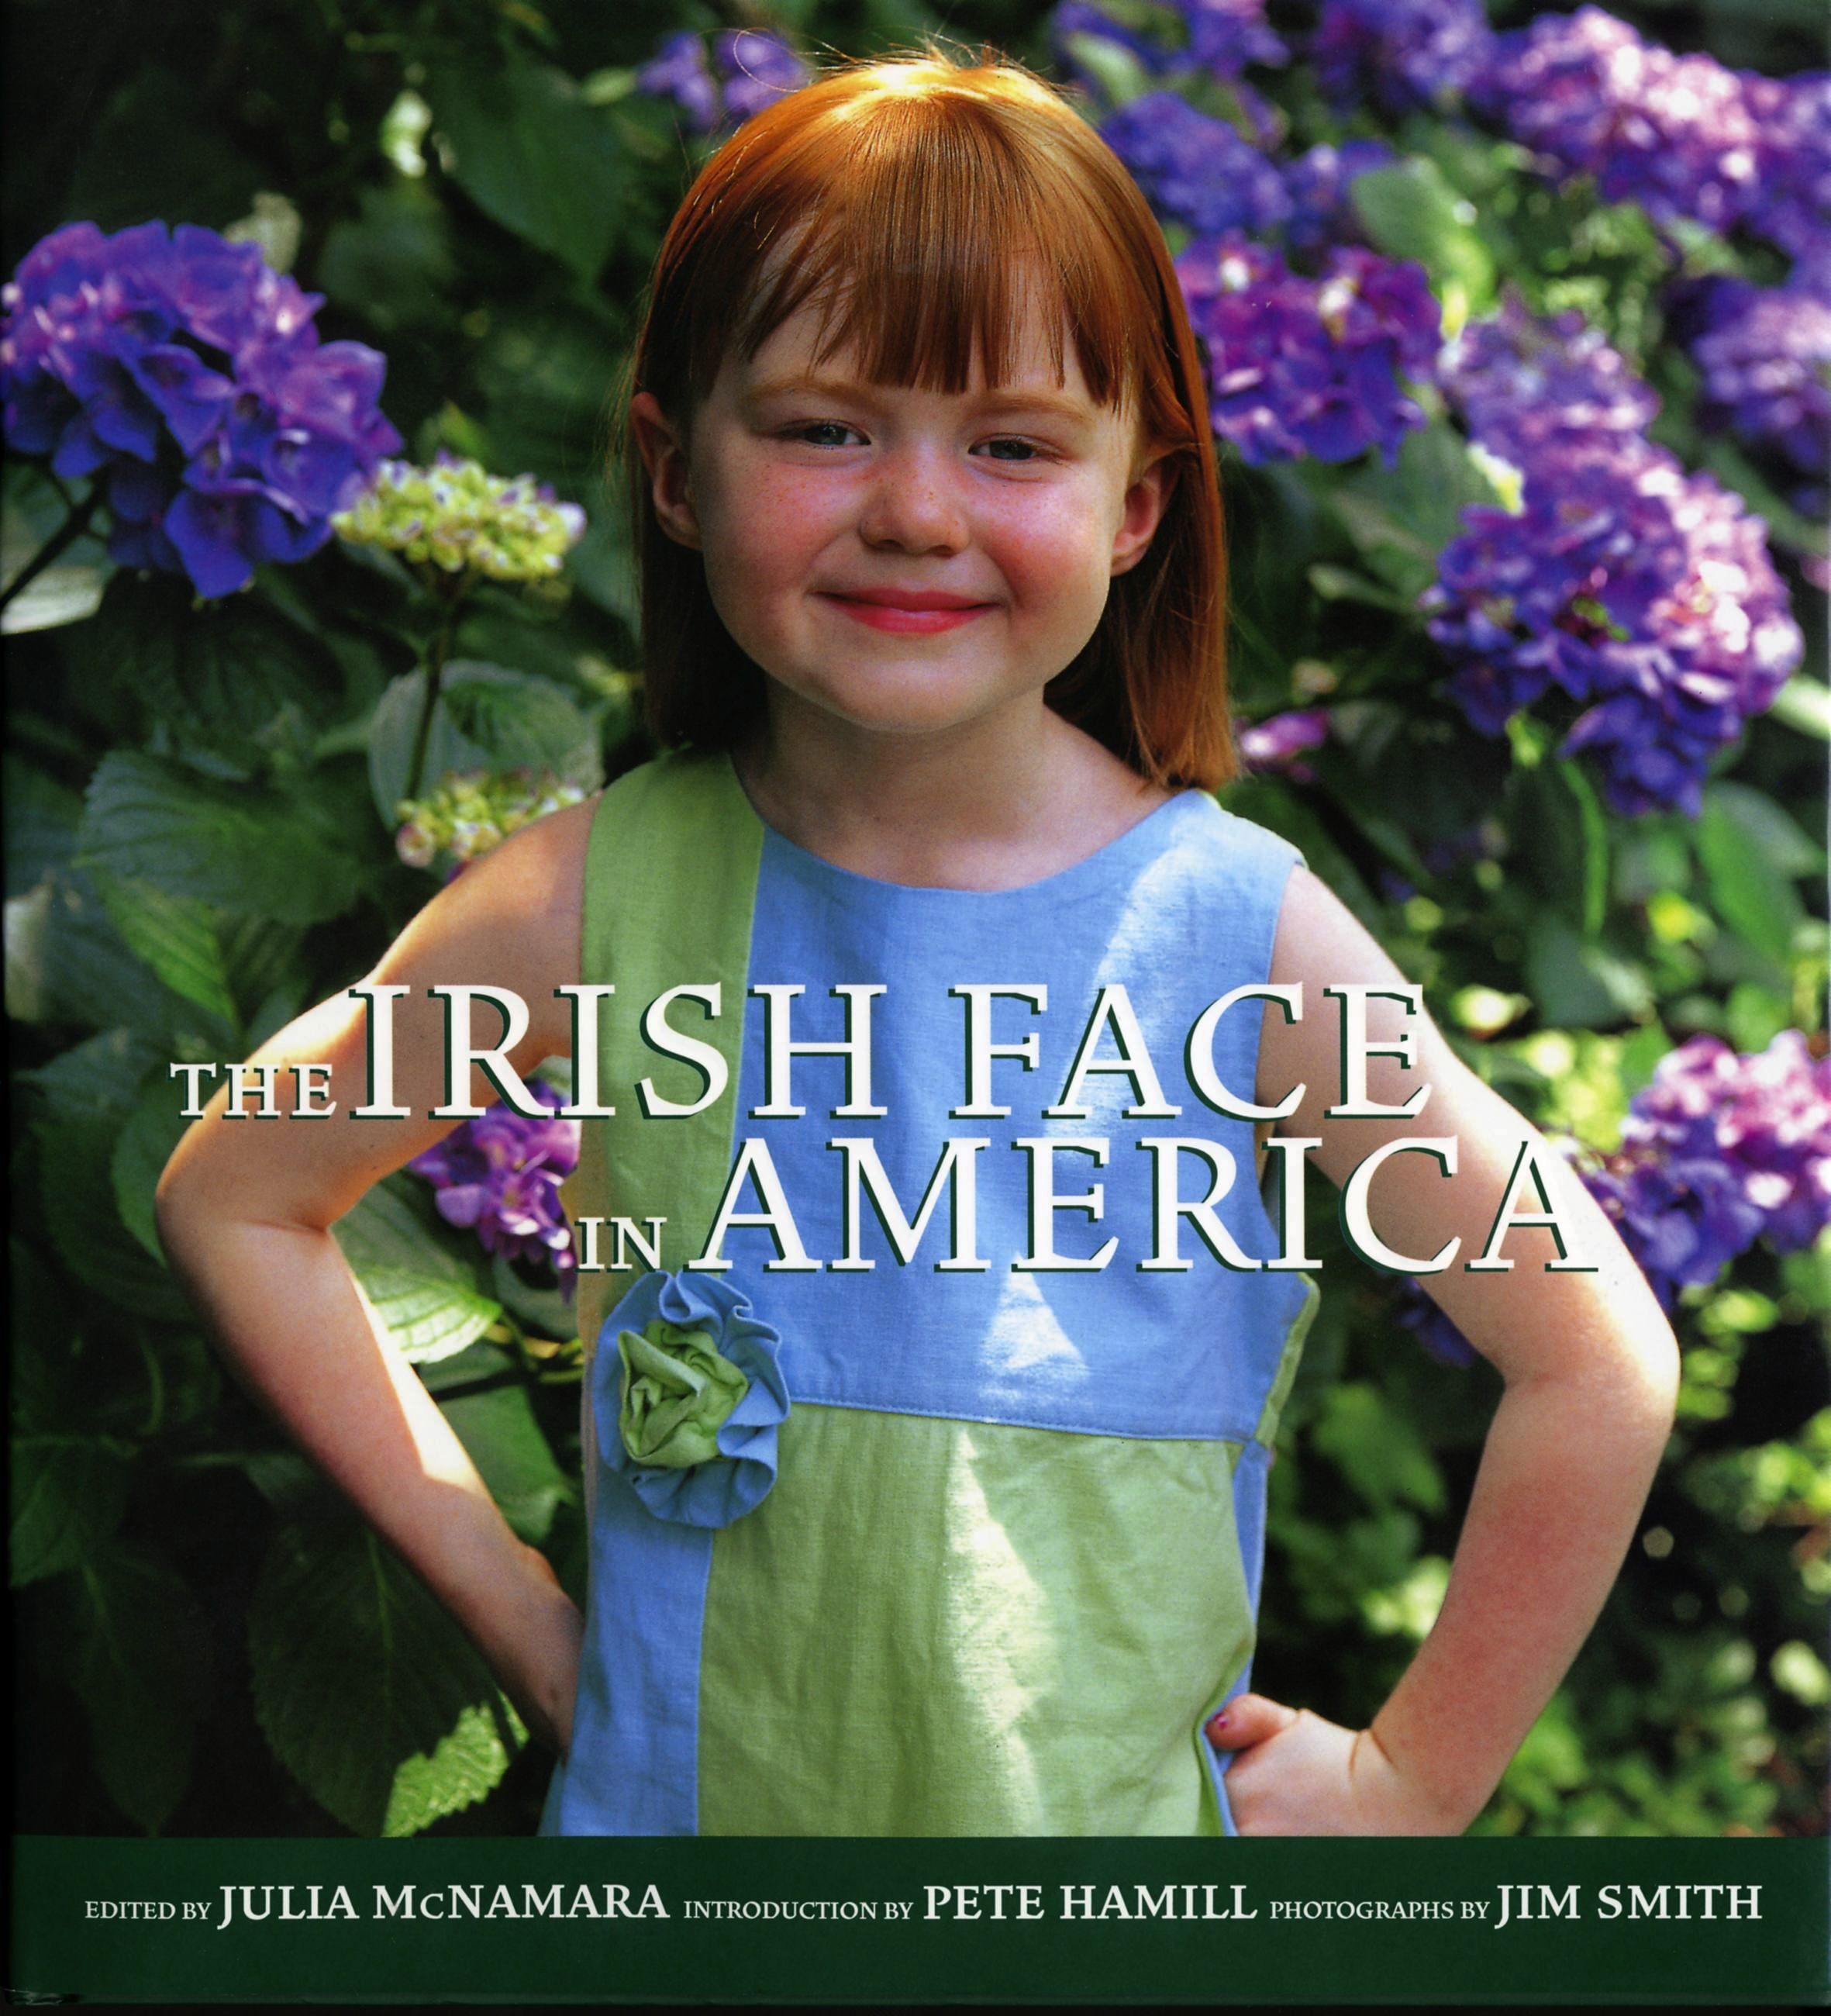 Irish Face in America, The